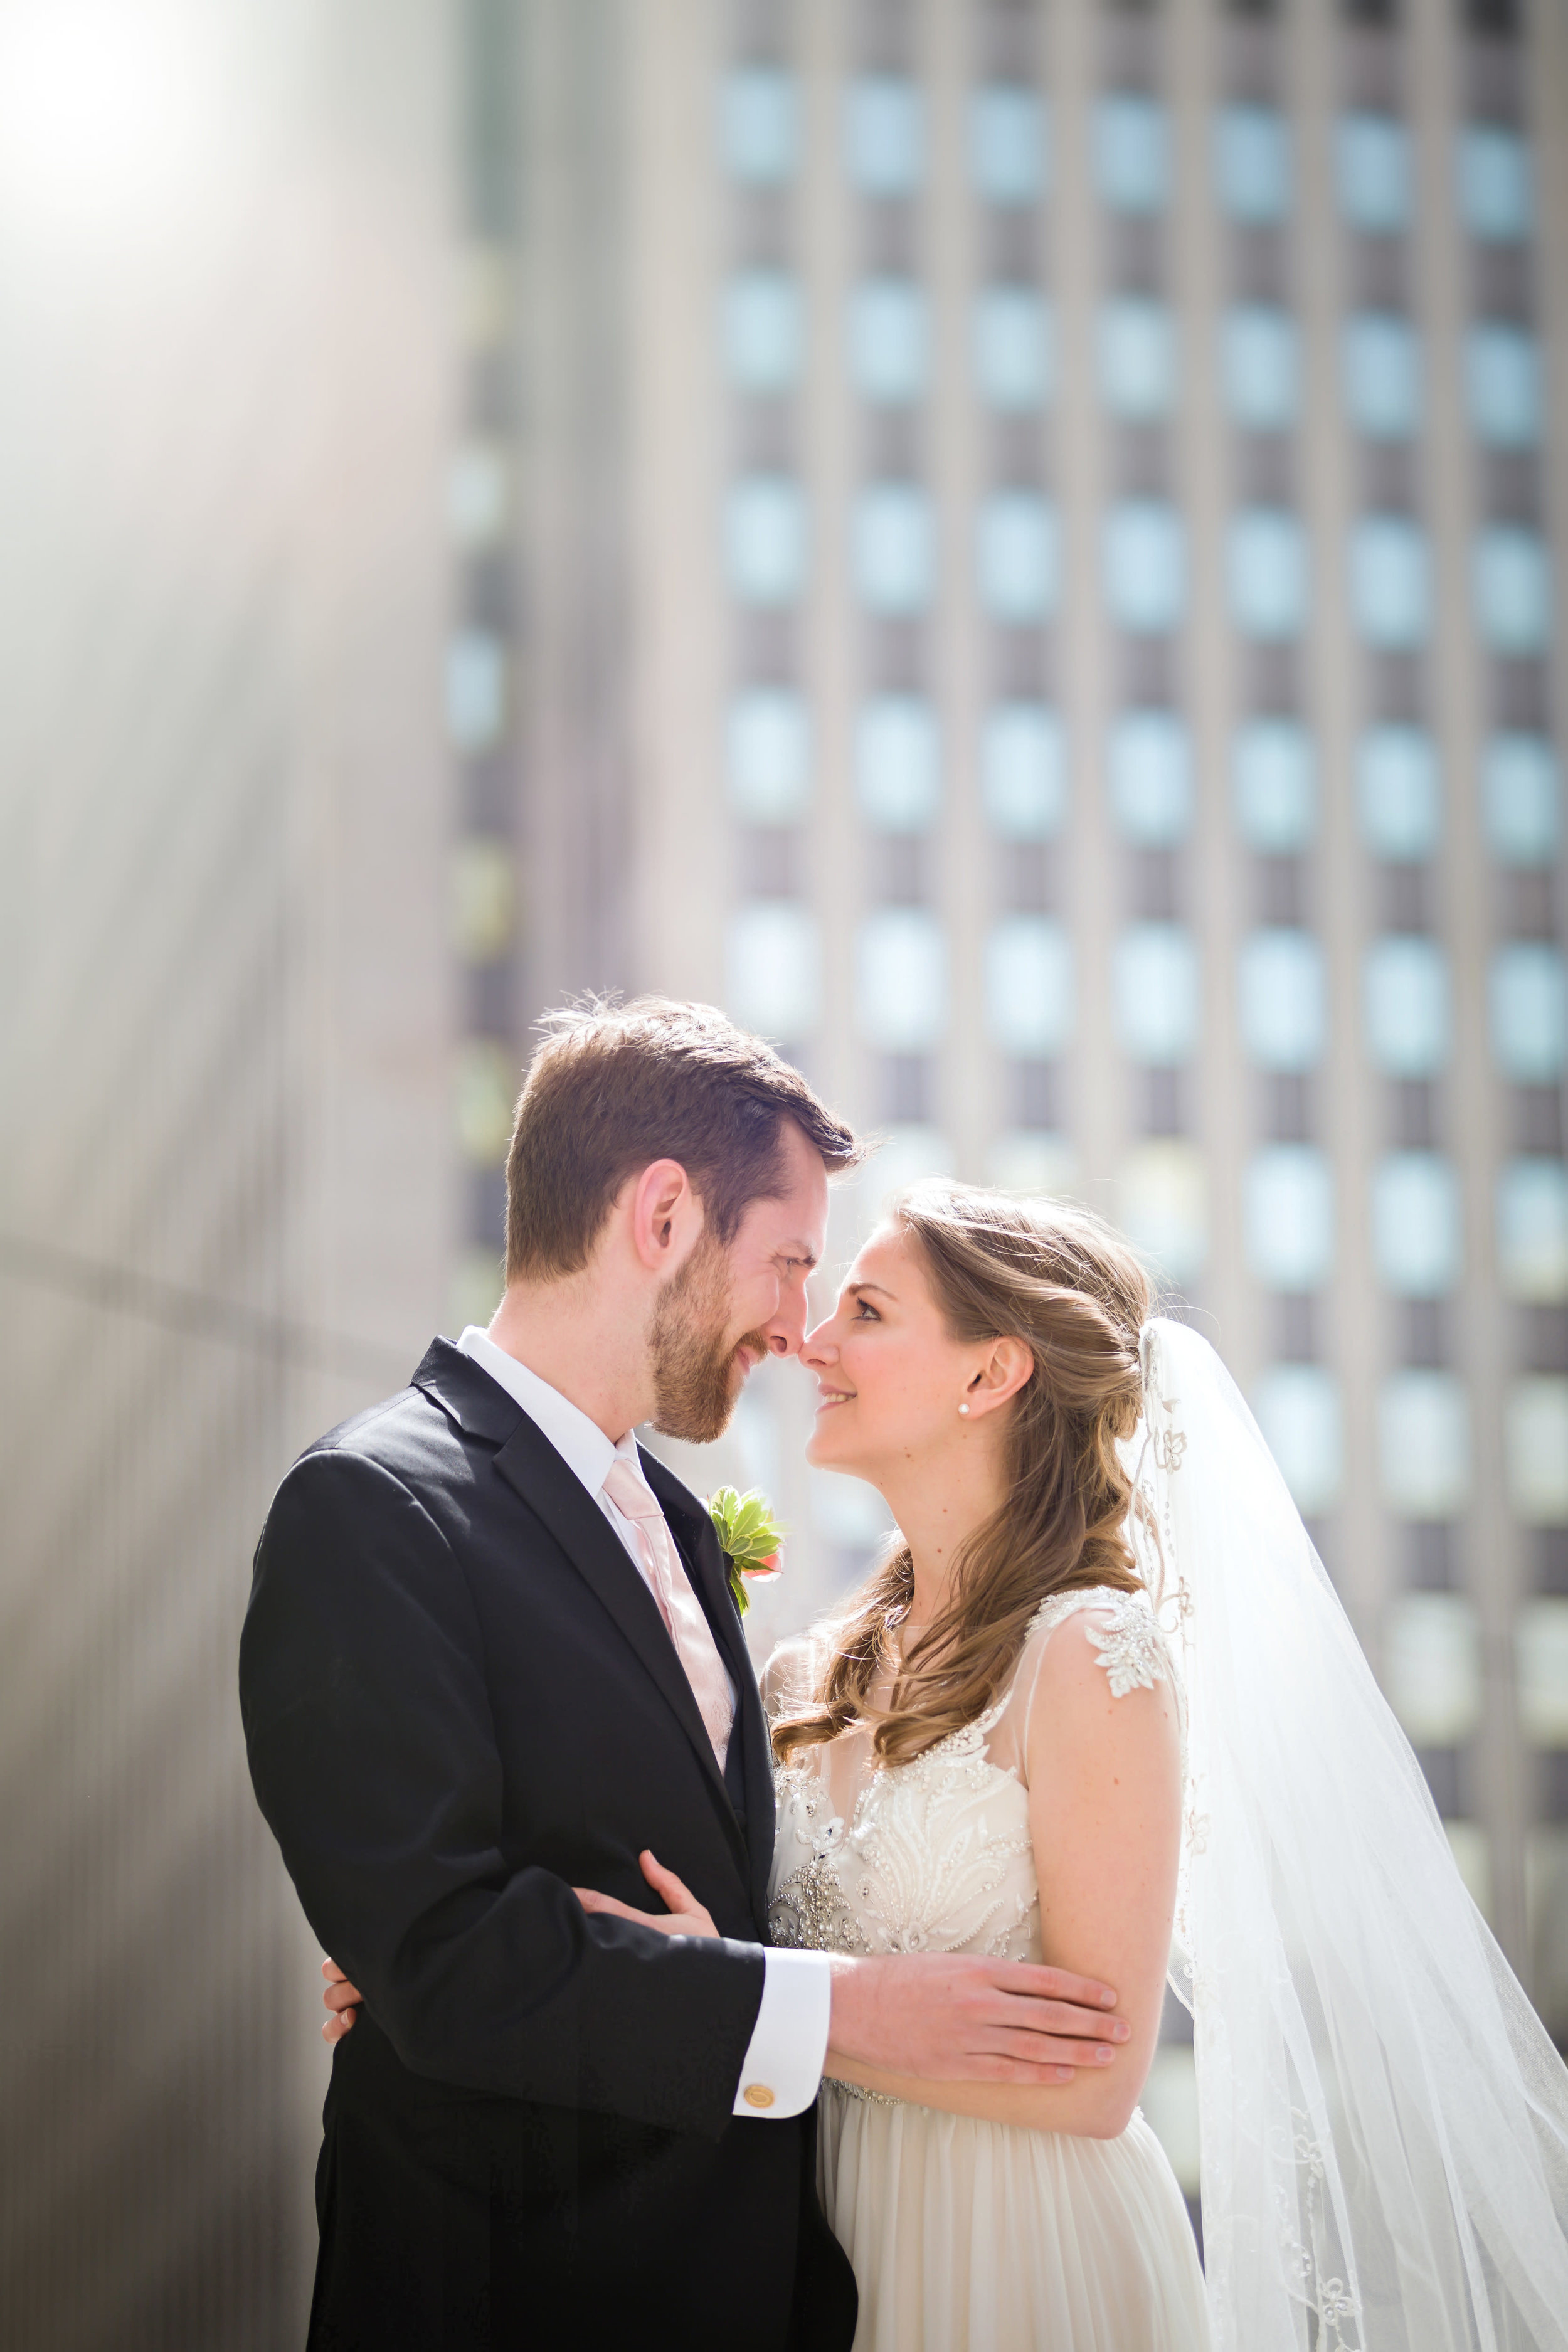 Omni William Penn Hotel Pittsburgh Wedding - The Overwhelmed Bride Wedding Blog